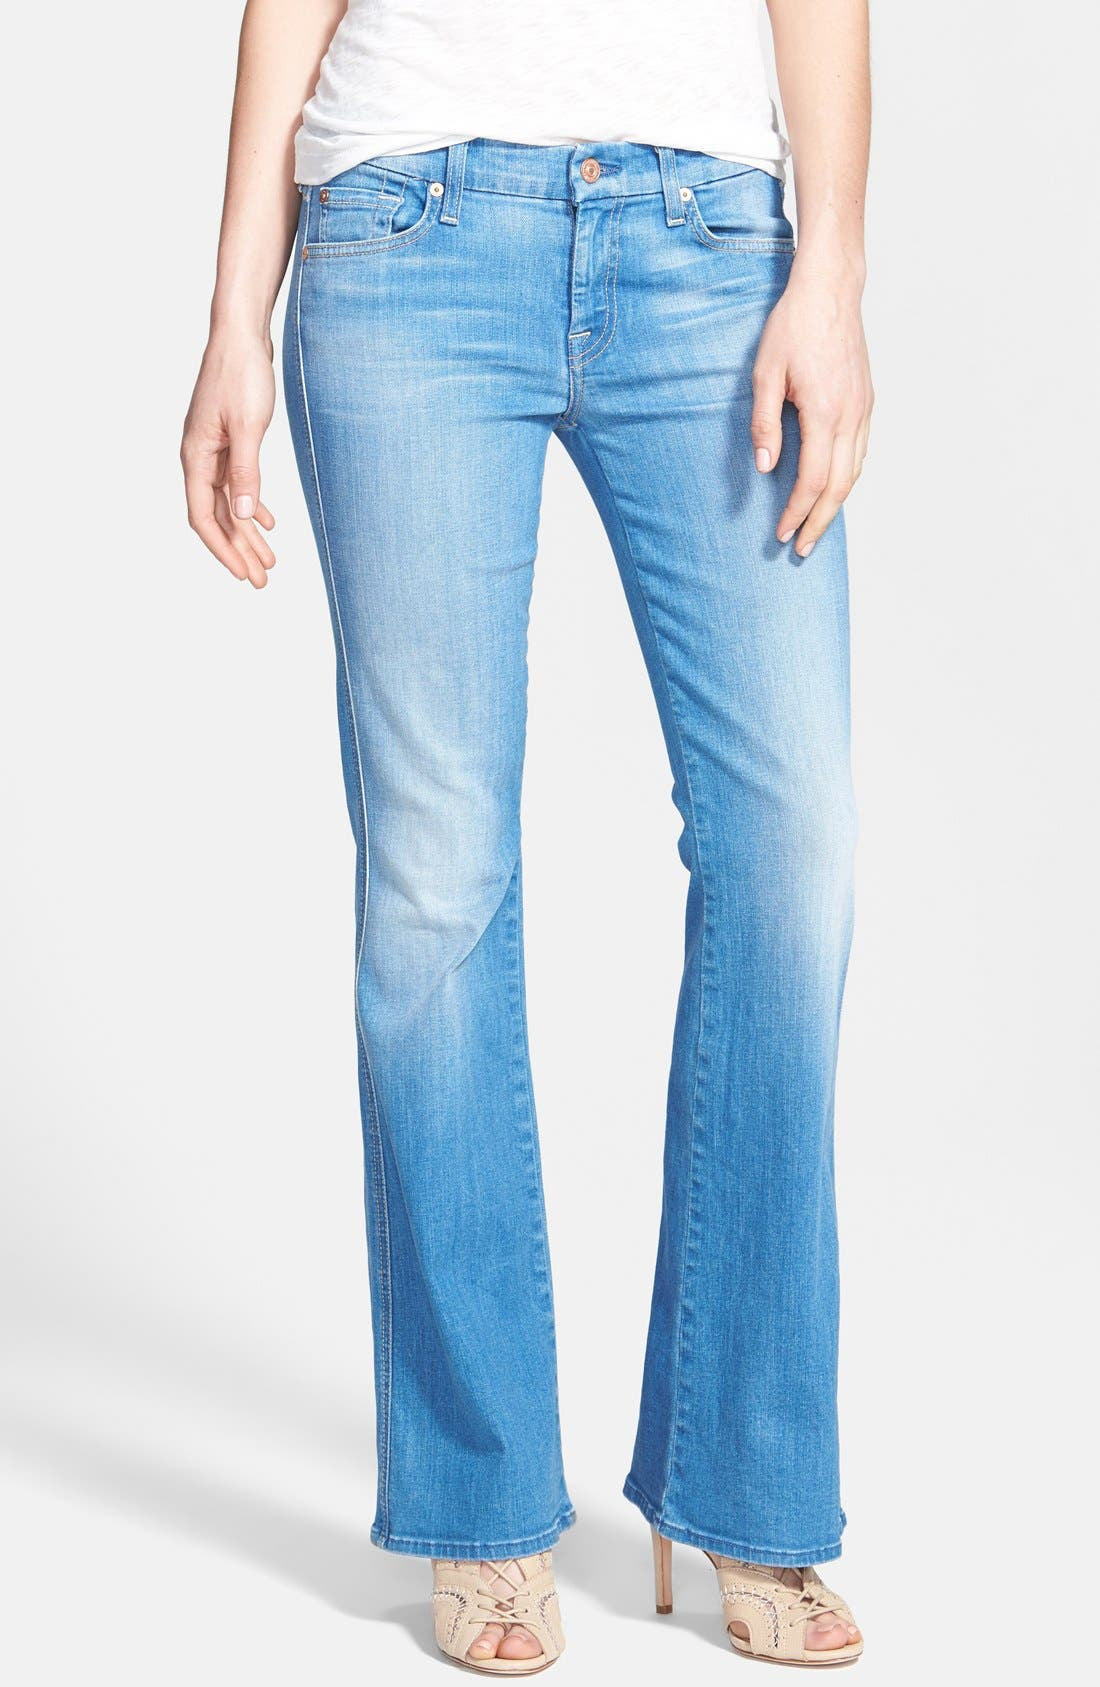 Alternate Image 1 Selected - 7 For All Mankind® 'A-Pocket' Bootcut Jeans (Petite) (Dutch Blue)